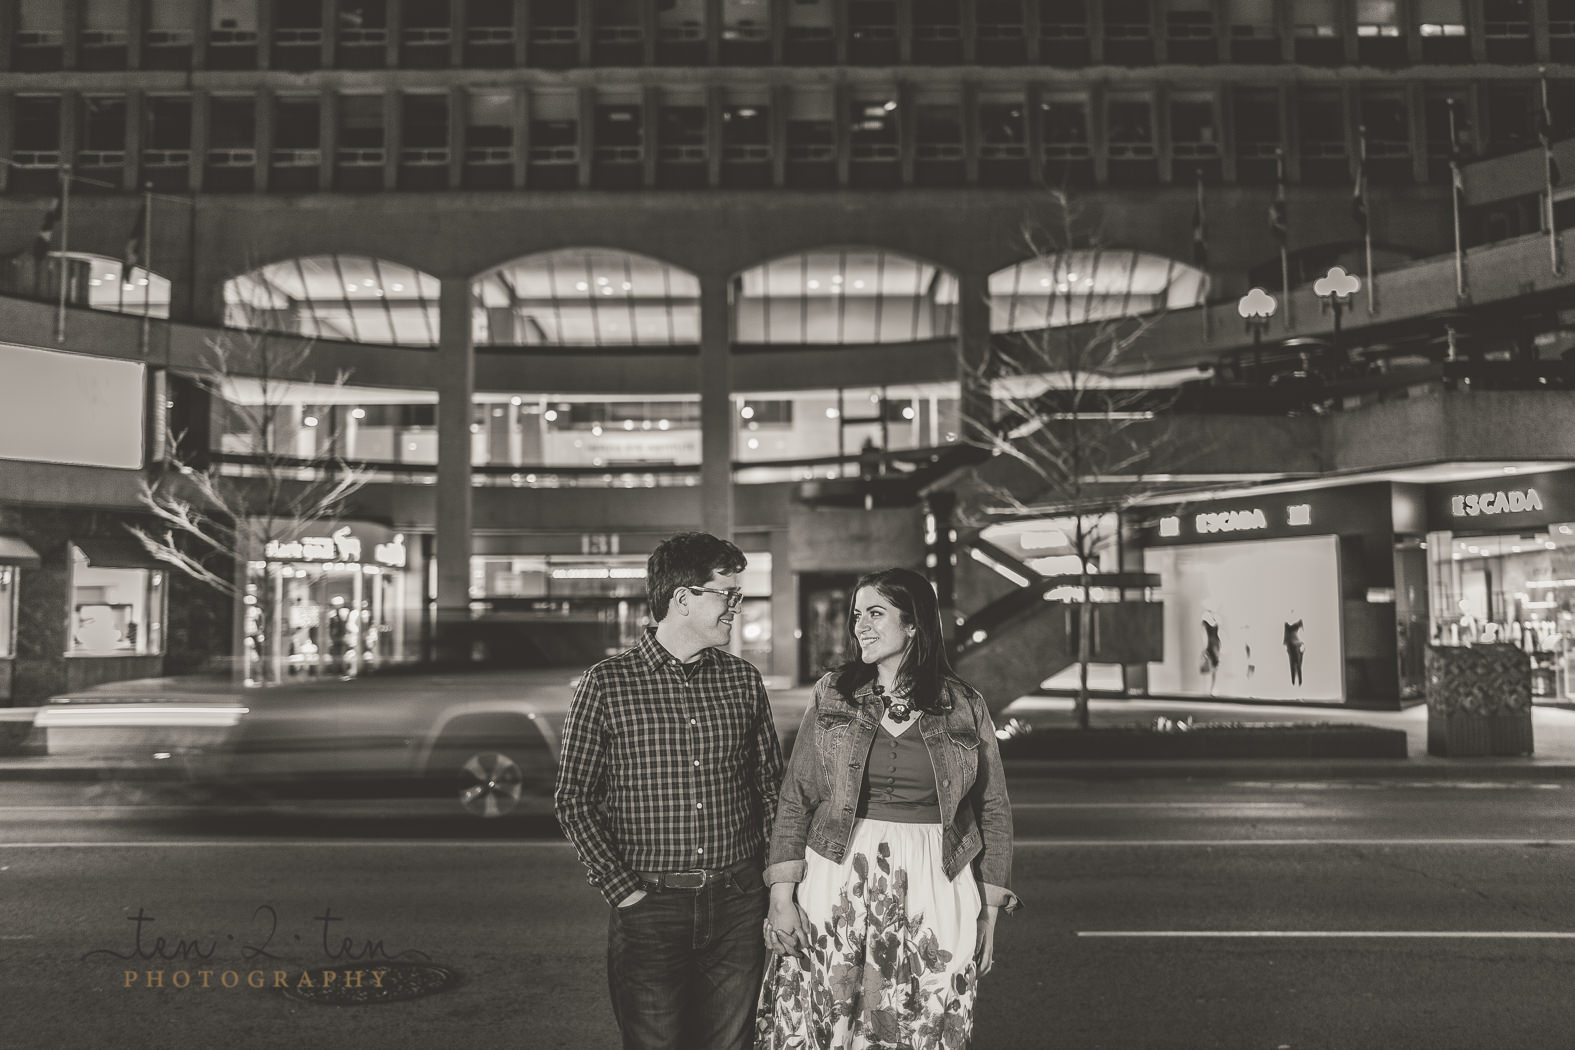 yorkville engagement photos, yorkville engagement shoot, engagement photos yorkville, night photos yorkville, night time engagement photos toronto